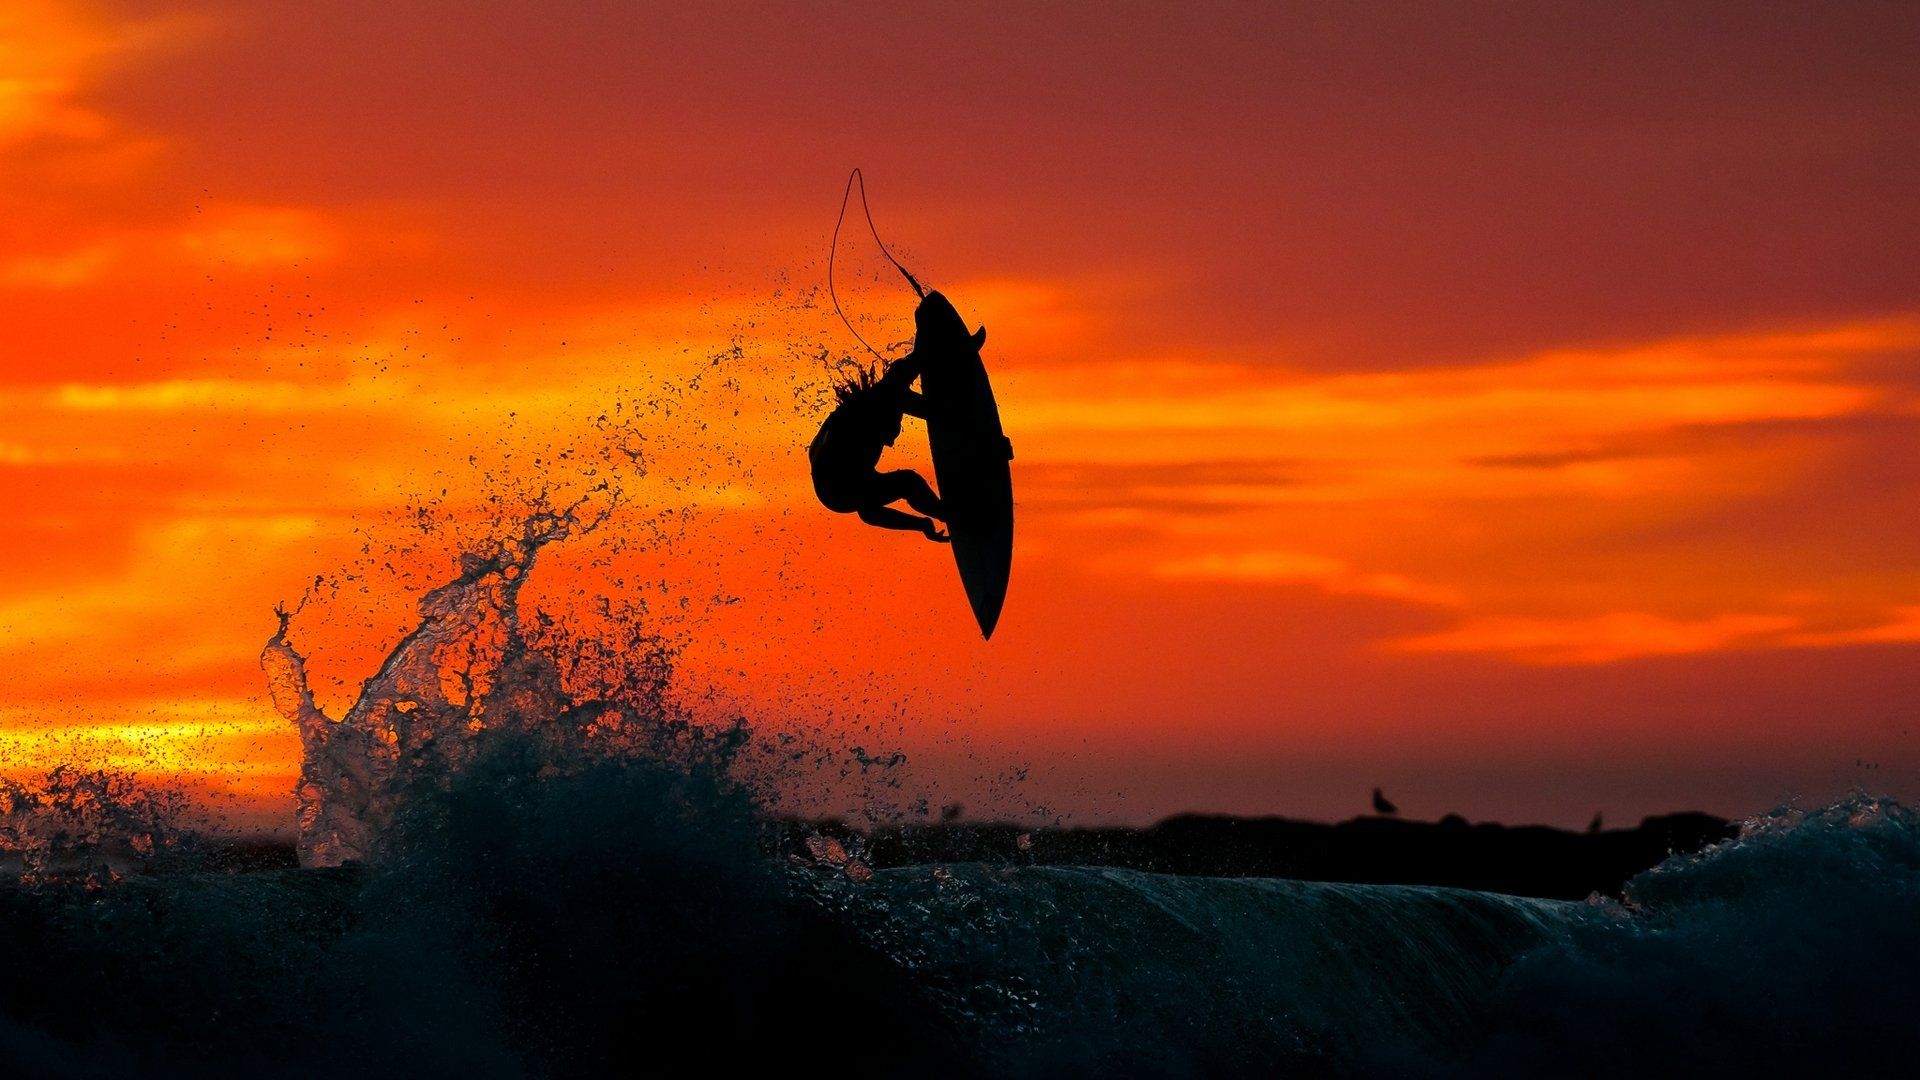 211 Surfing HD Wallpapers | Backgrounds - Wallpaper Abyss